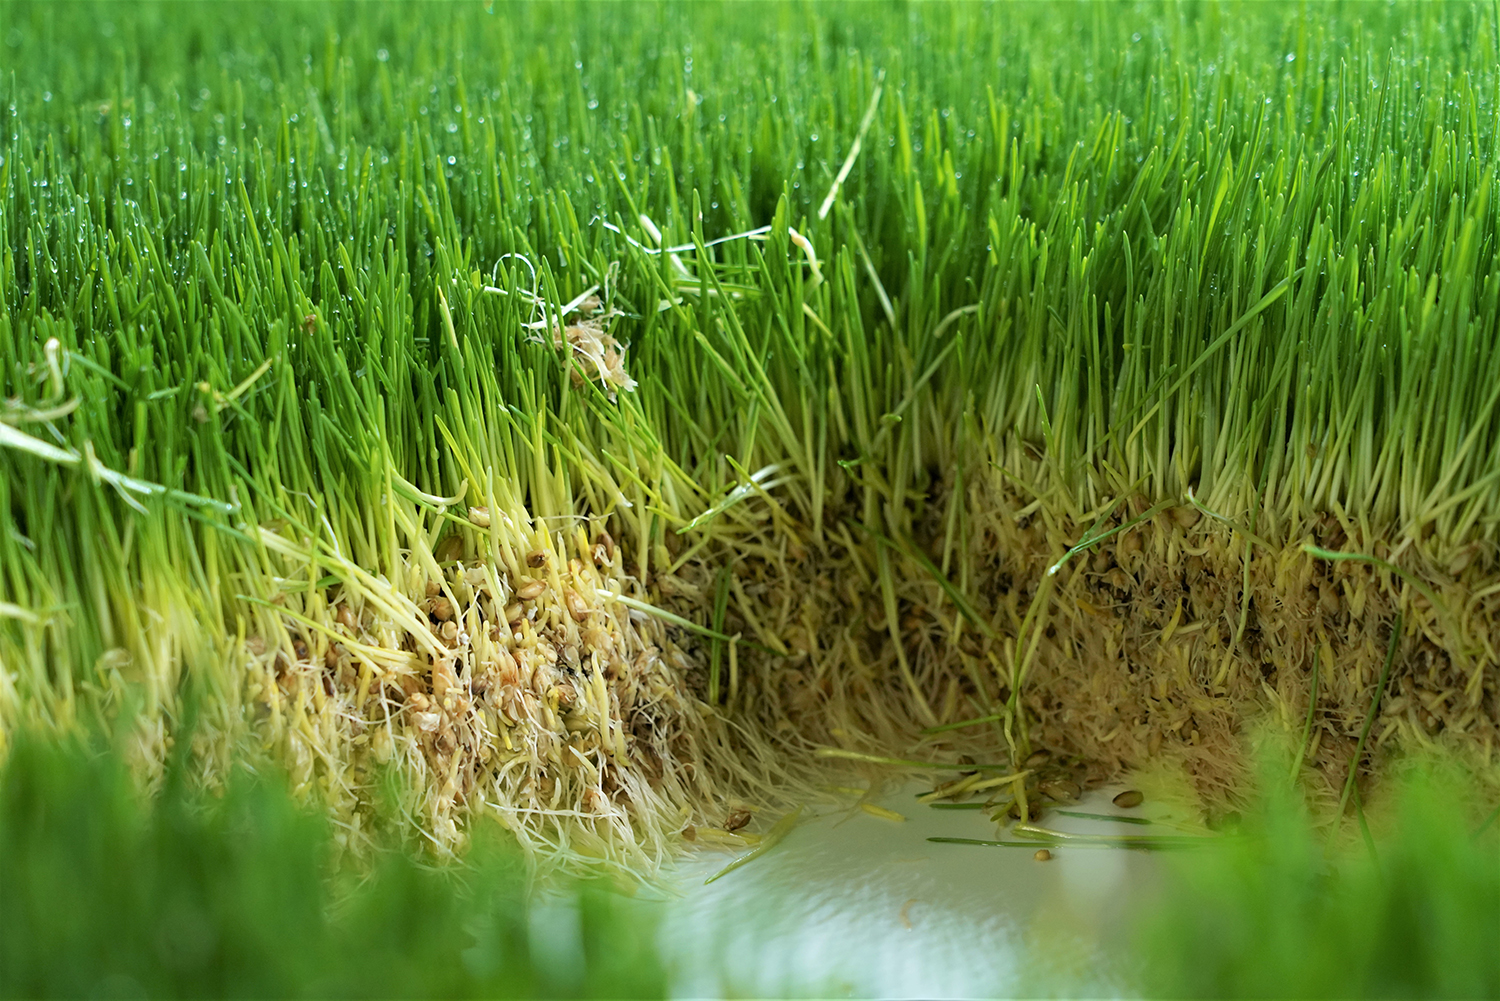 Closeup image of hydroponically-grown fodder for livestock